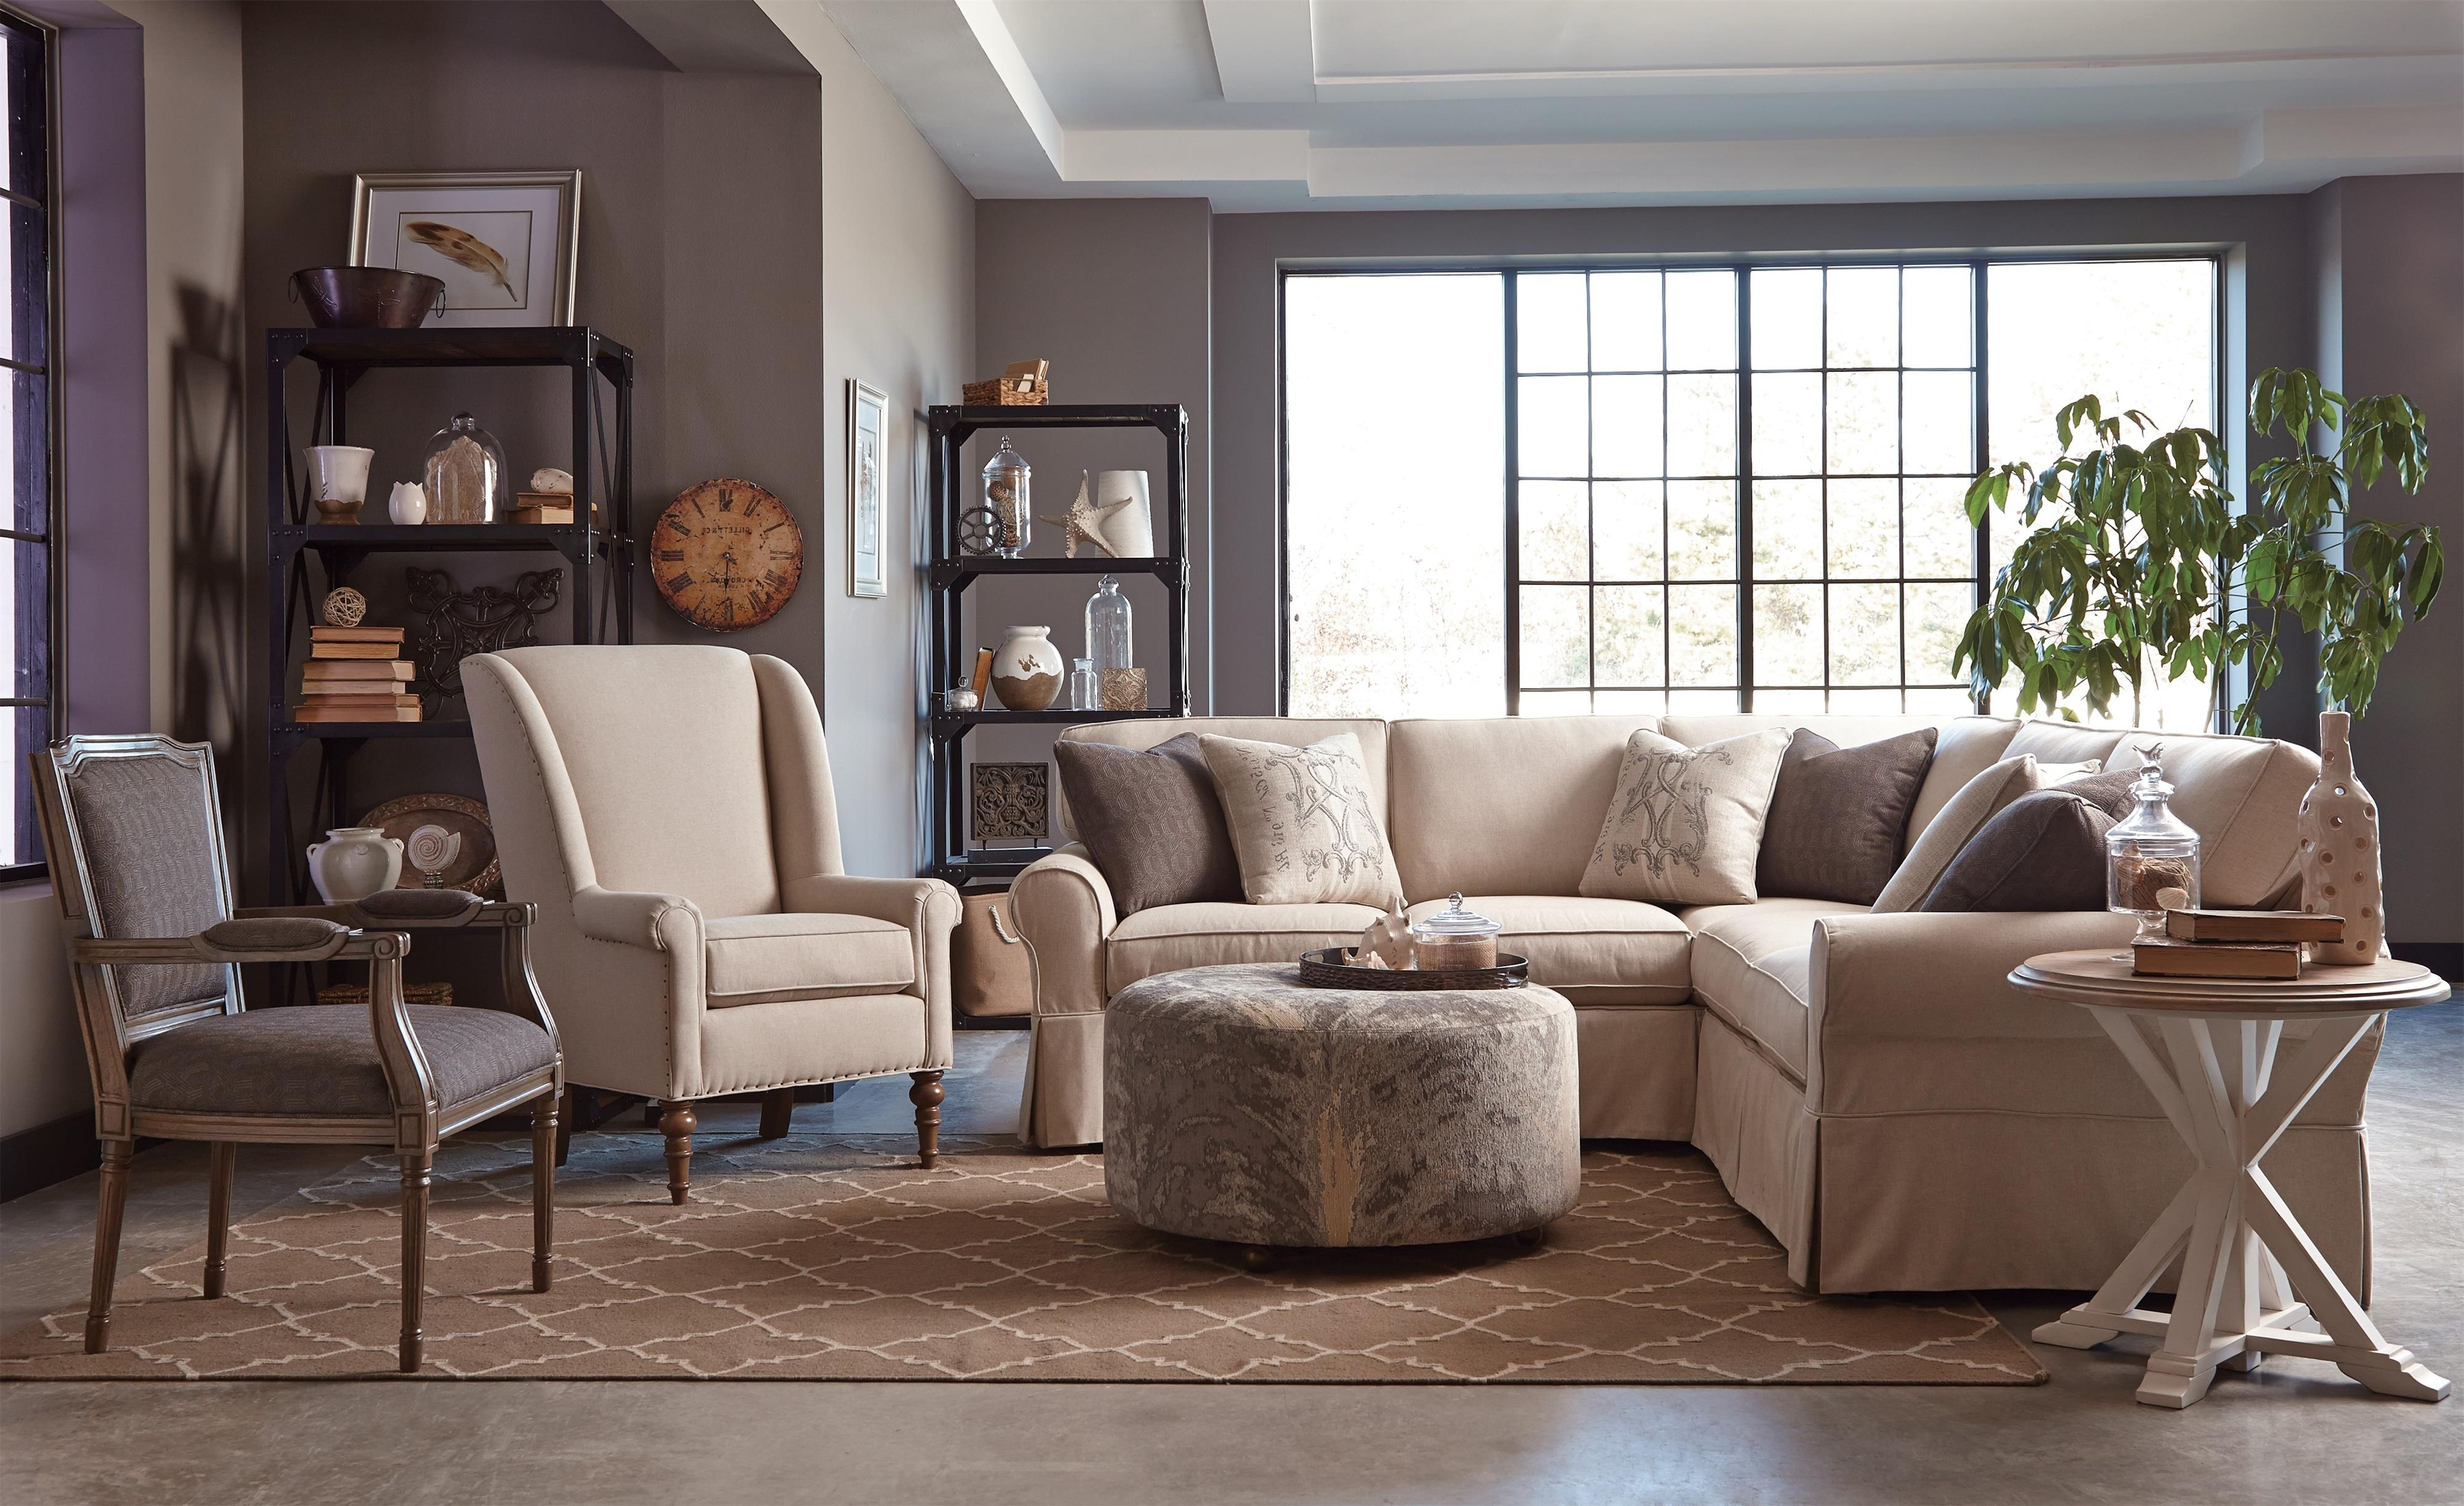 Most Recent Craftsman Sectional Sofas For Furnitures: Fill Your Home With Luxury Craftmaster Furniture For (View 13 of 15)